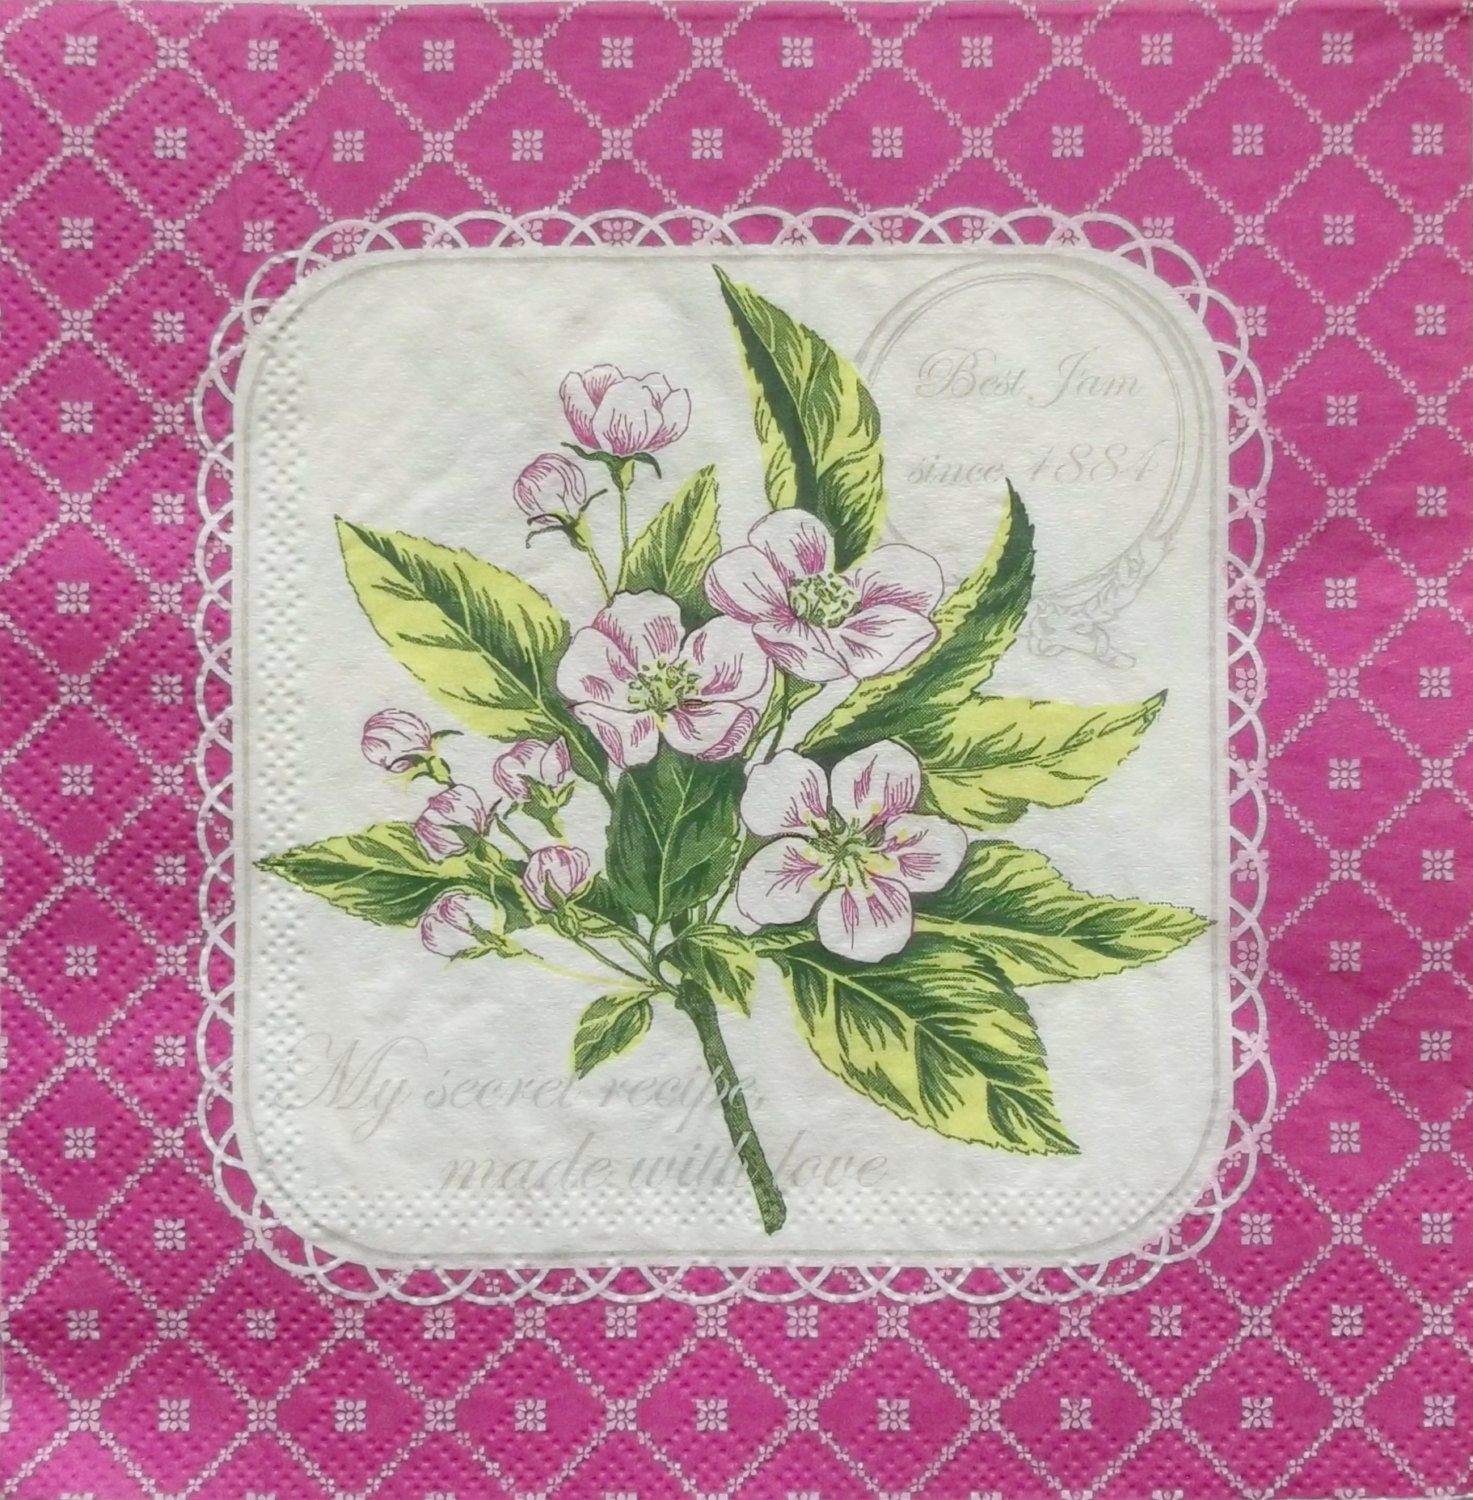 Monogram Paper Napkins Uk: Set Of 2 Pcs 3-ply Flowers In Pink Paper Napkins For Decoupage